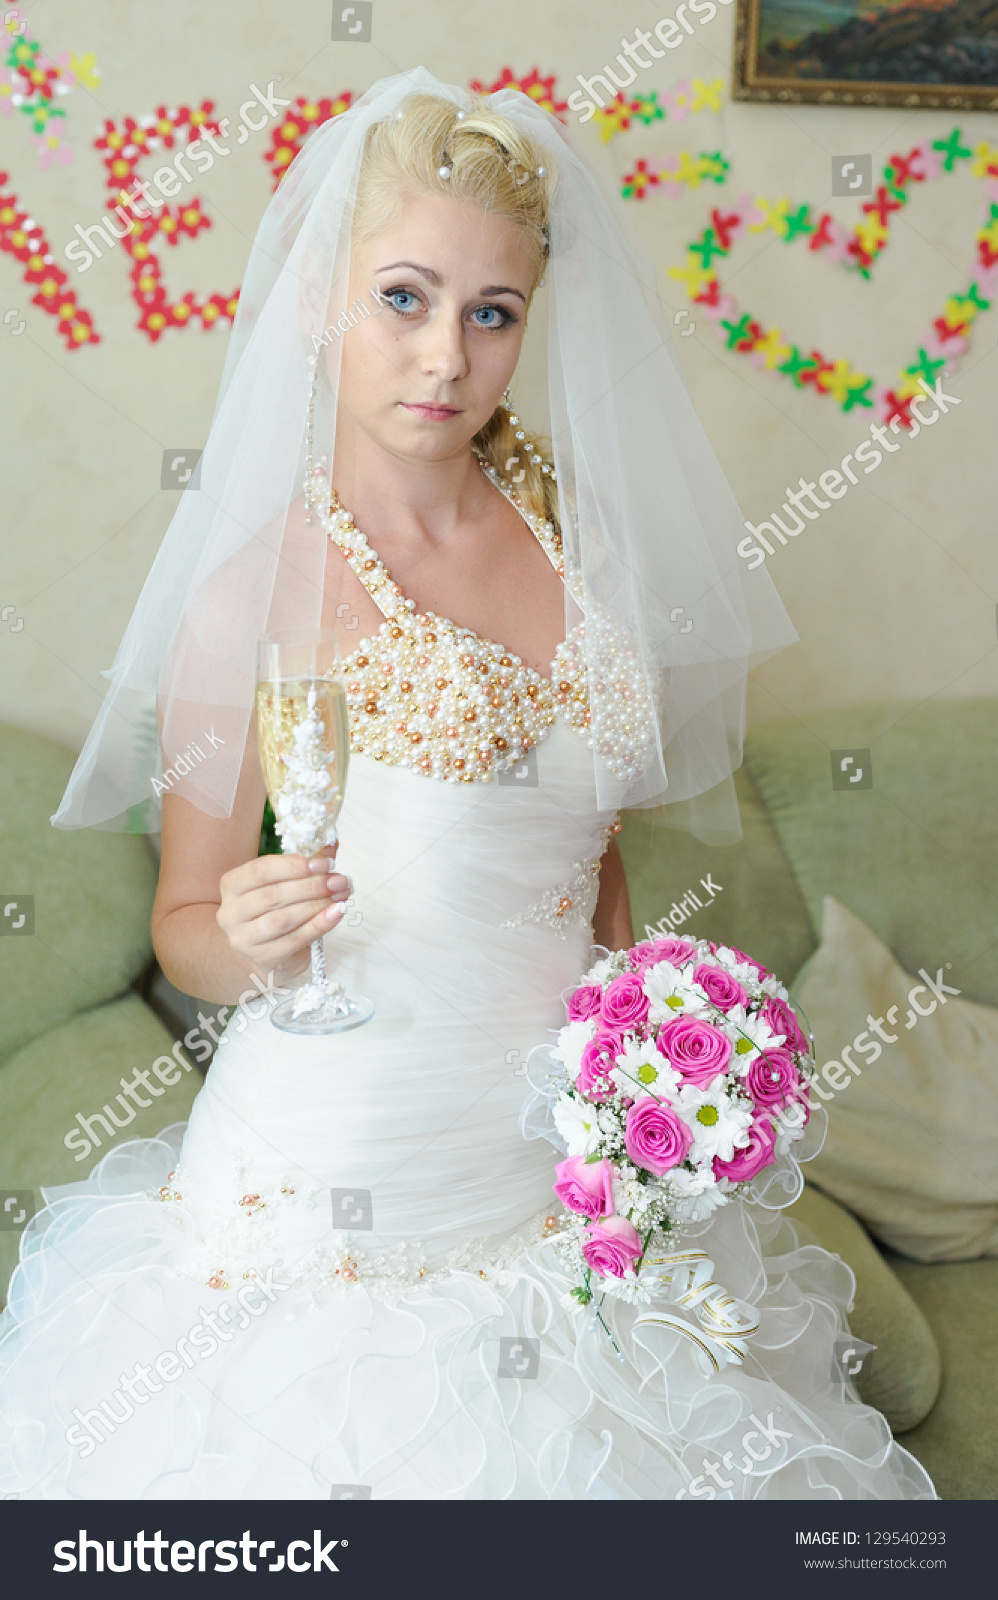 Happy Young Bride On Wedding Day Stock Photo Shutterstock